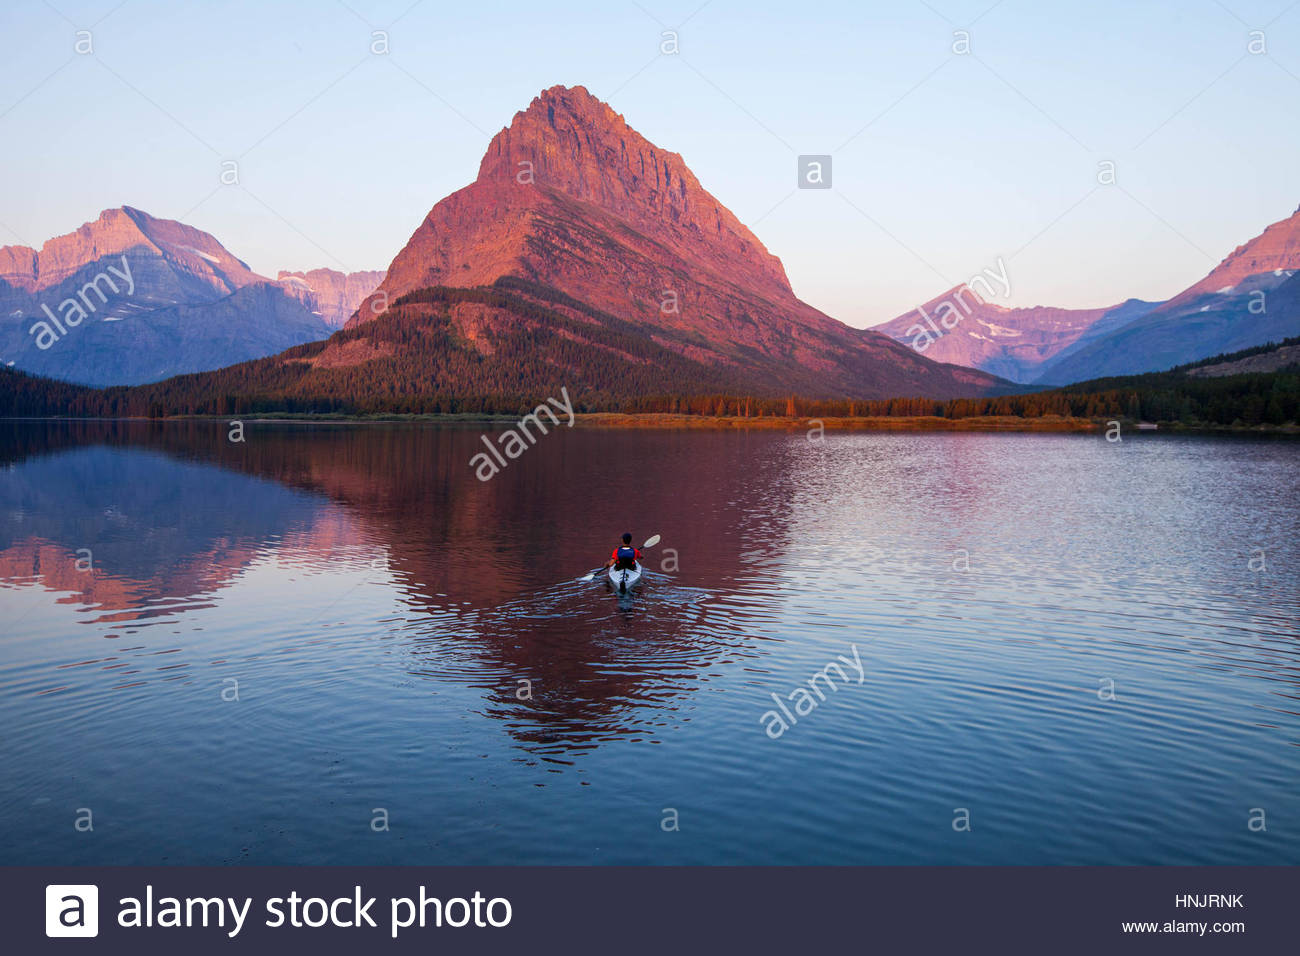 A kayaker on Swiftcurrent Lake watches the sunrise over Mount Grinnell. - Stock Image